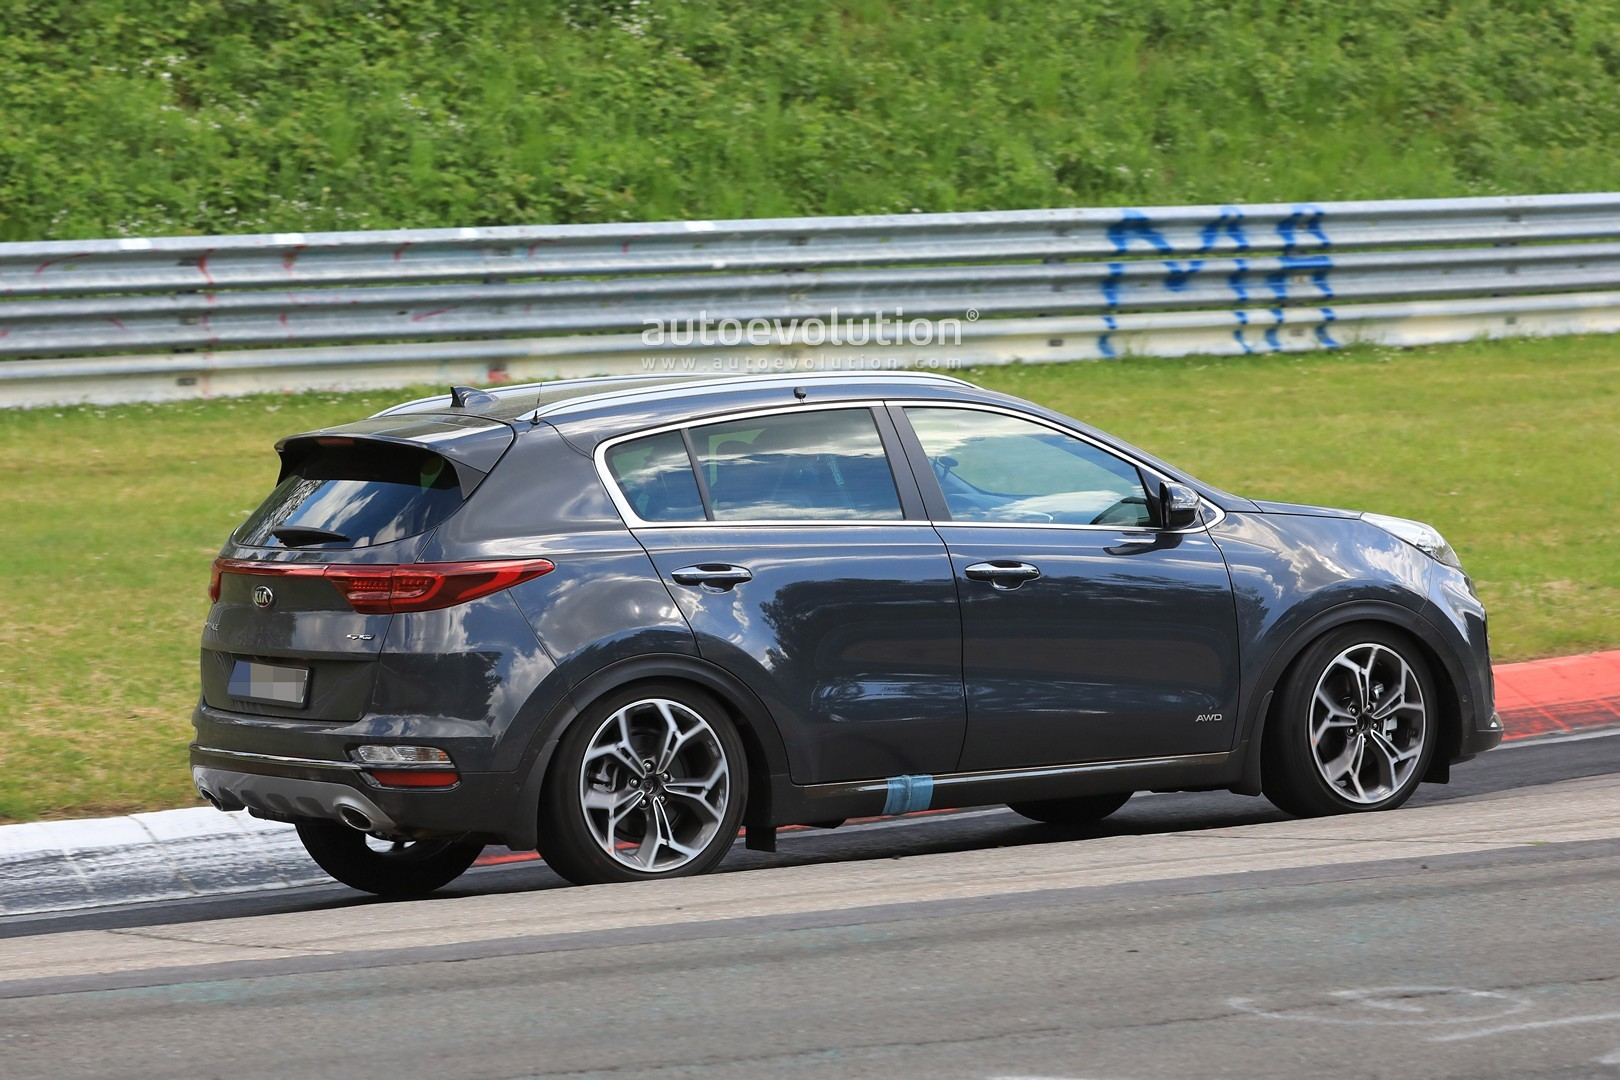 2019 kia sportage facelift revealed in full at the nurburgring autoevolution. Black Bedroom Furniture Sets. Home Design Ideas